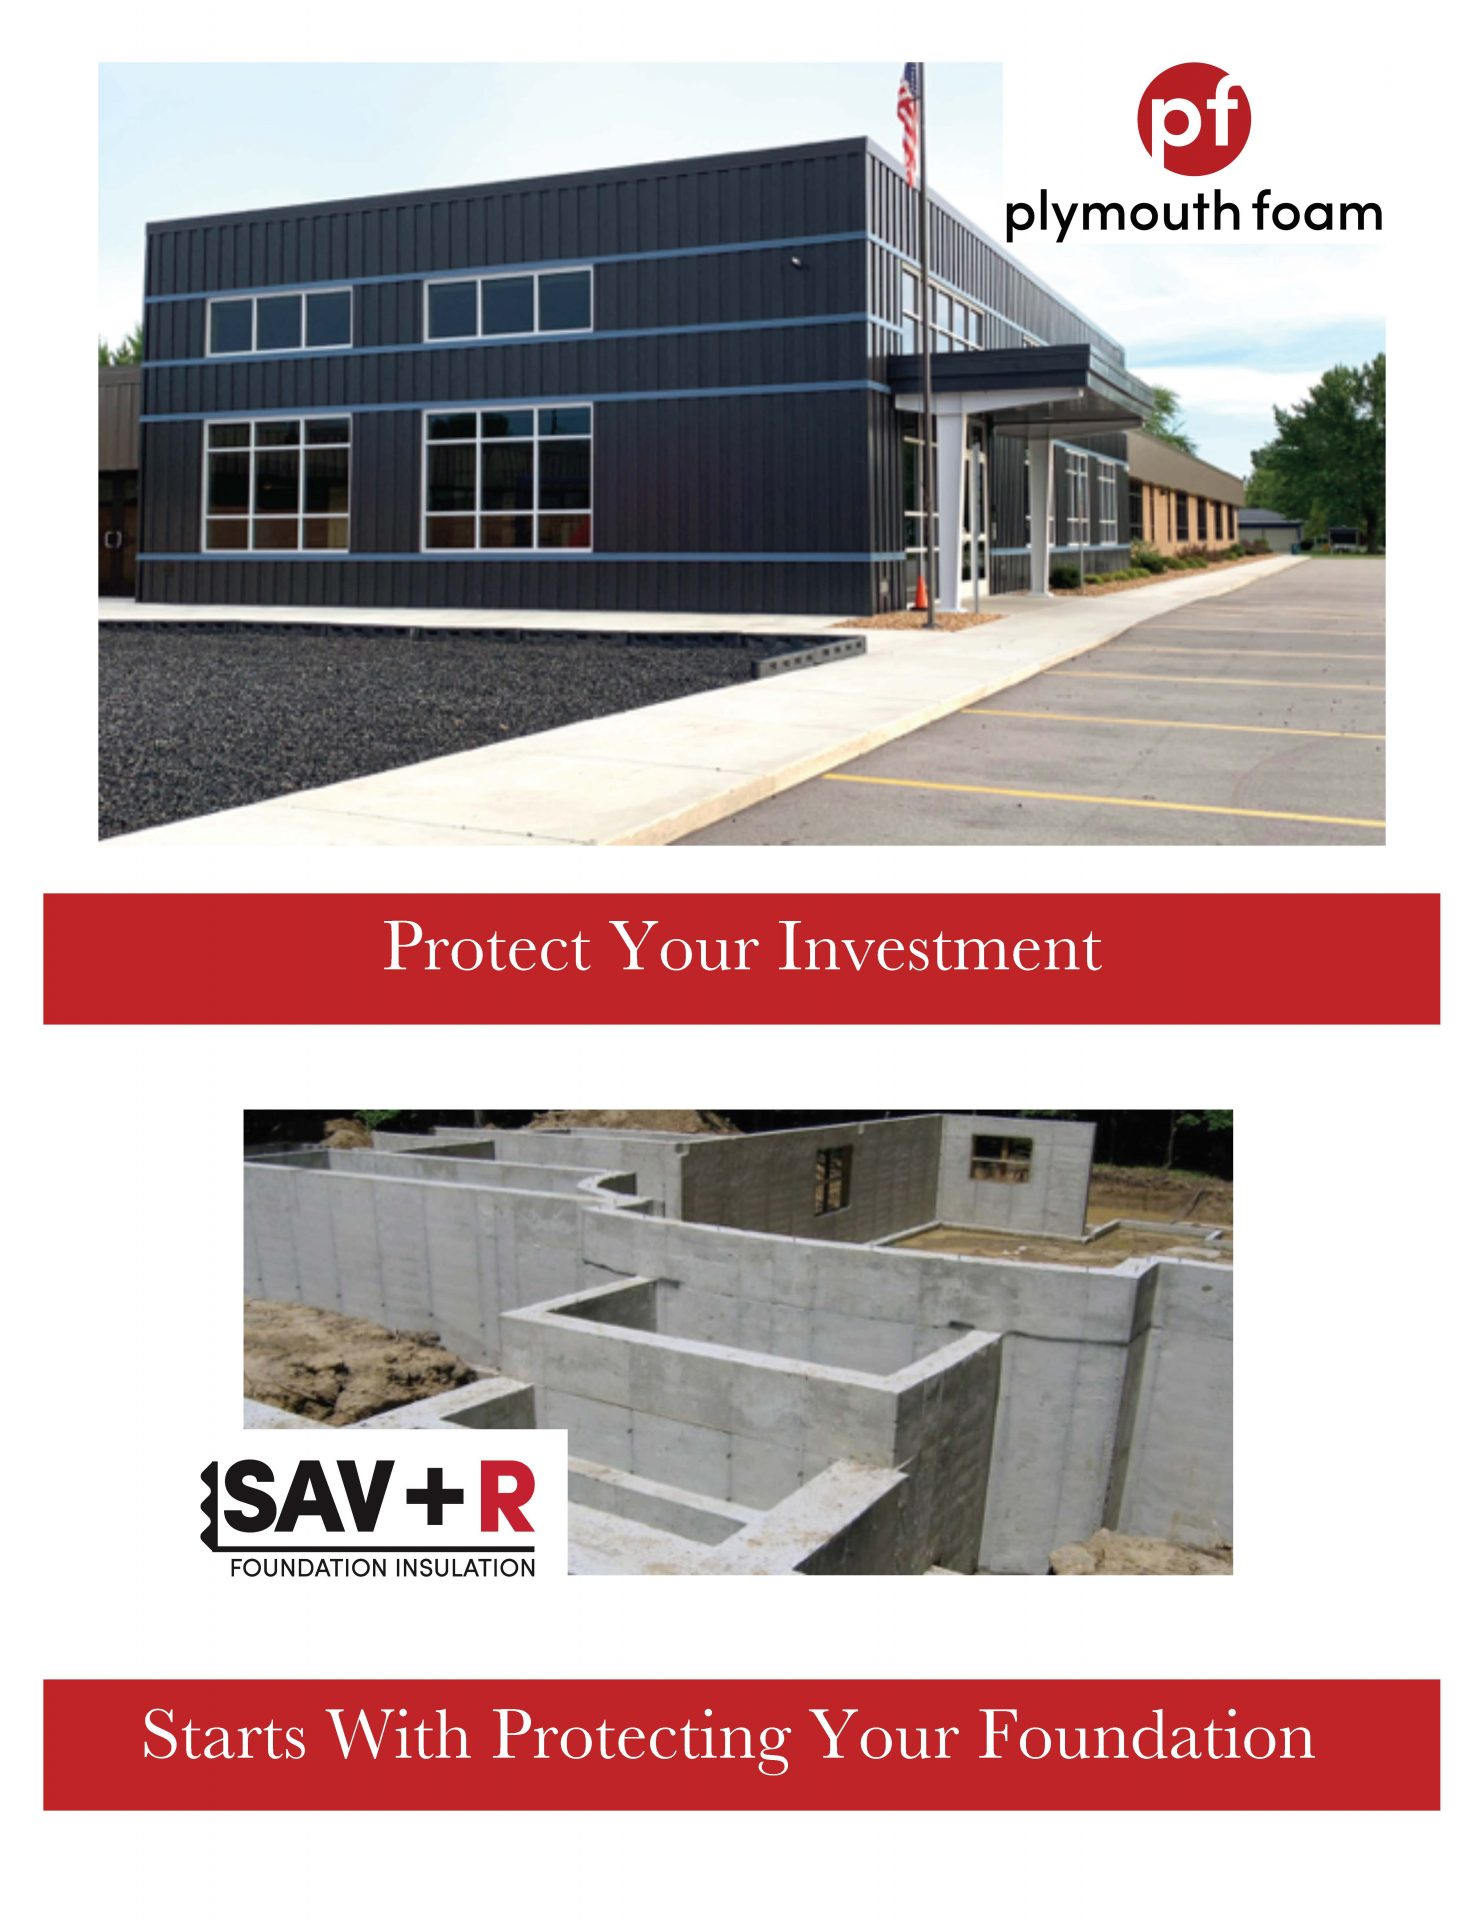 Sav R RED PF Commercial Brochure _Page_1